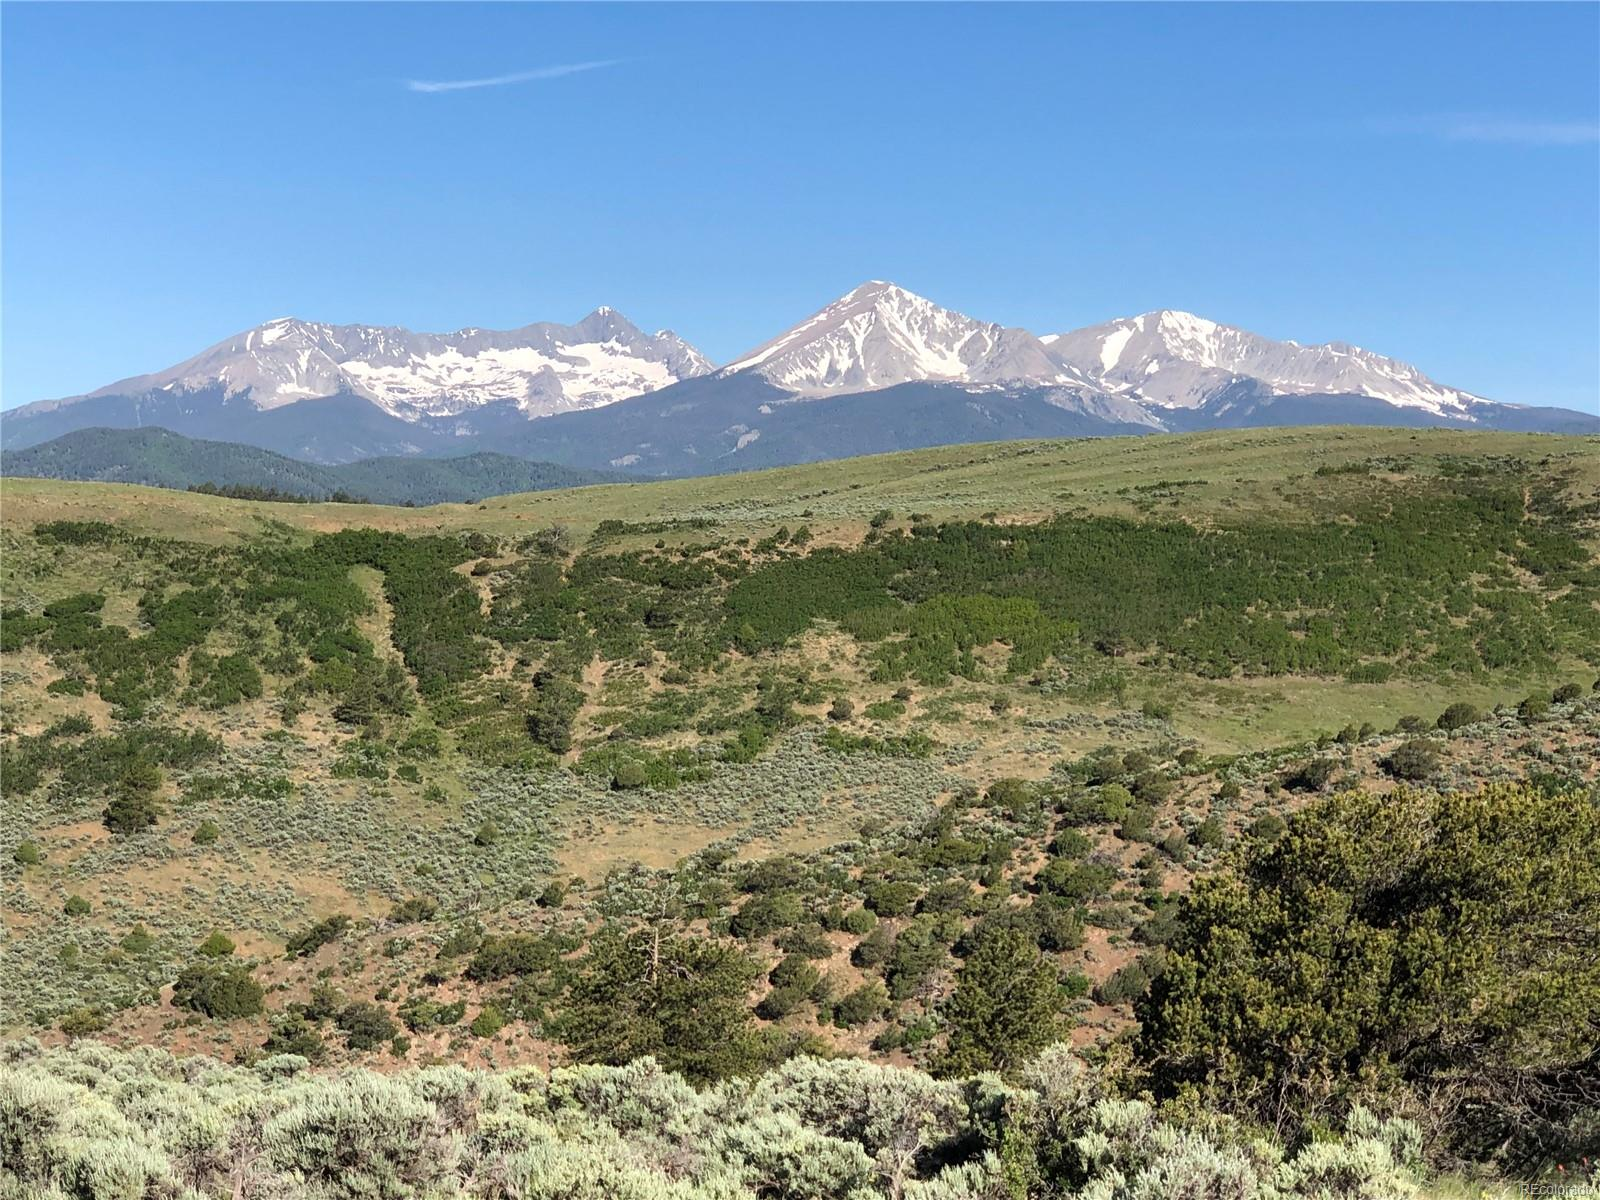 243 Borman Drive, Fort Garland, CO 81133 - Fort Garland, CO real estate listing